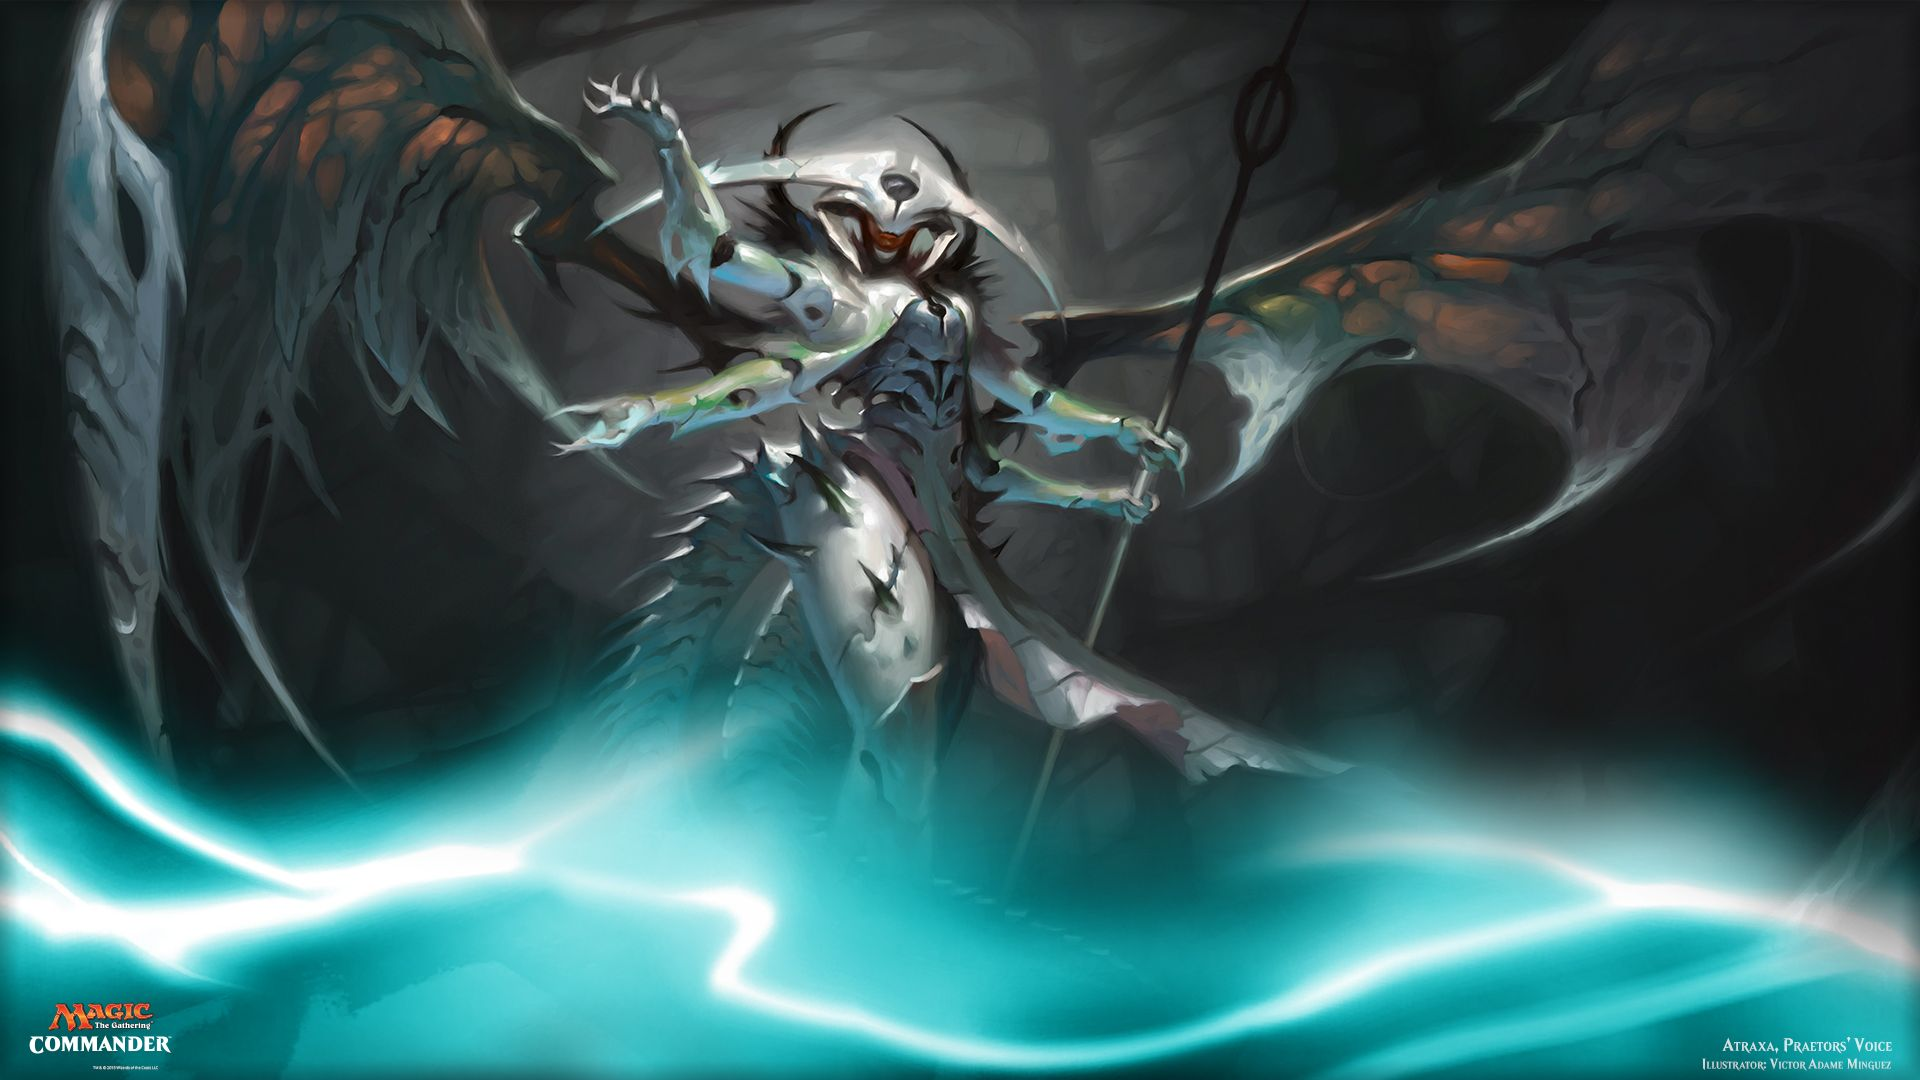 Http://magic.wizards.com/sites/mtg/files/images/wallpaper